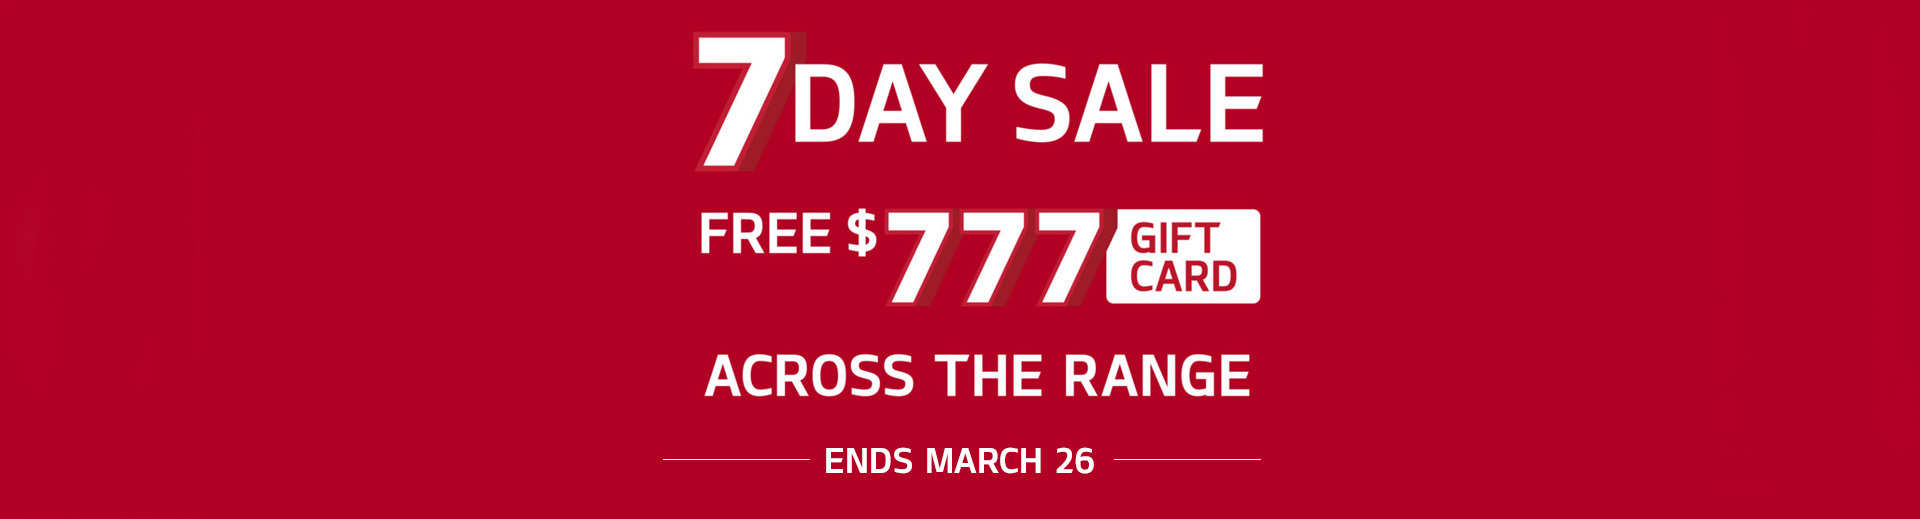 Kia - National Offer - 7 Day Sale Across The Range - Free $777 Gift Card